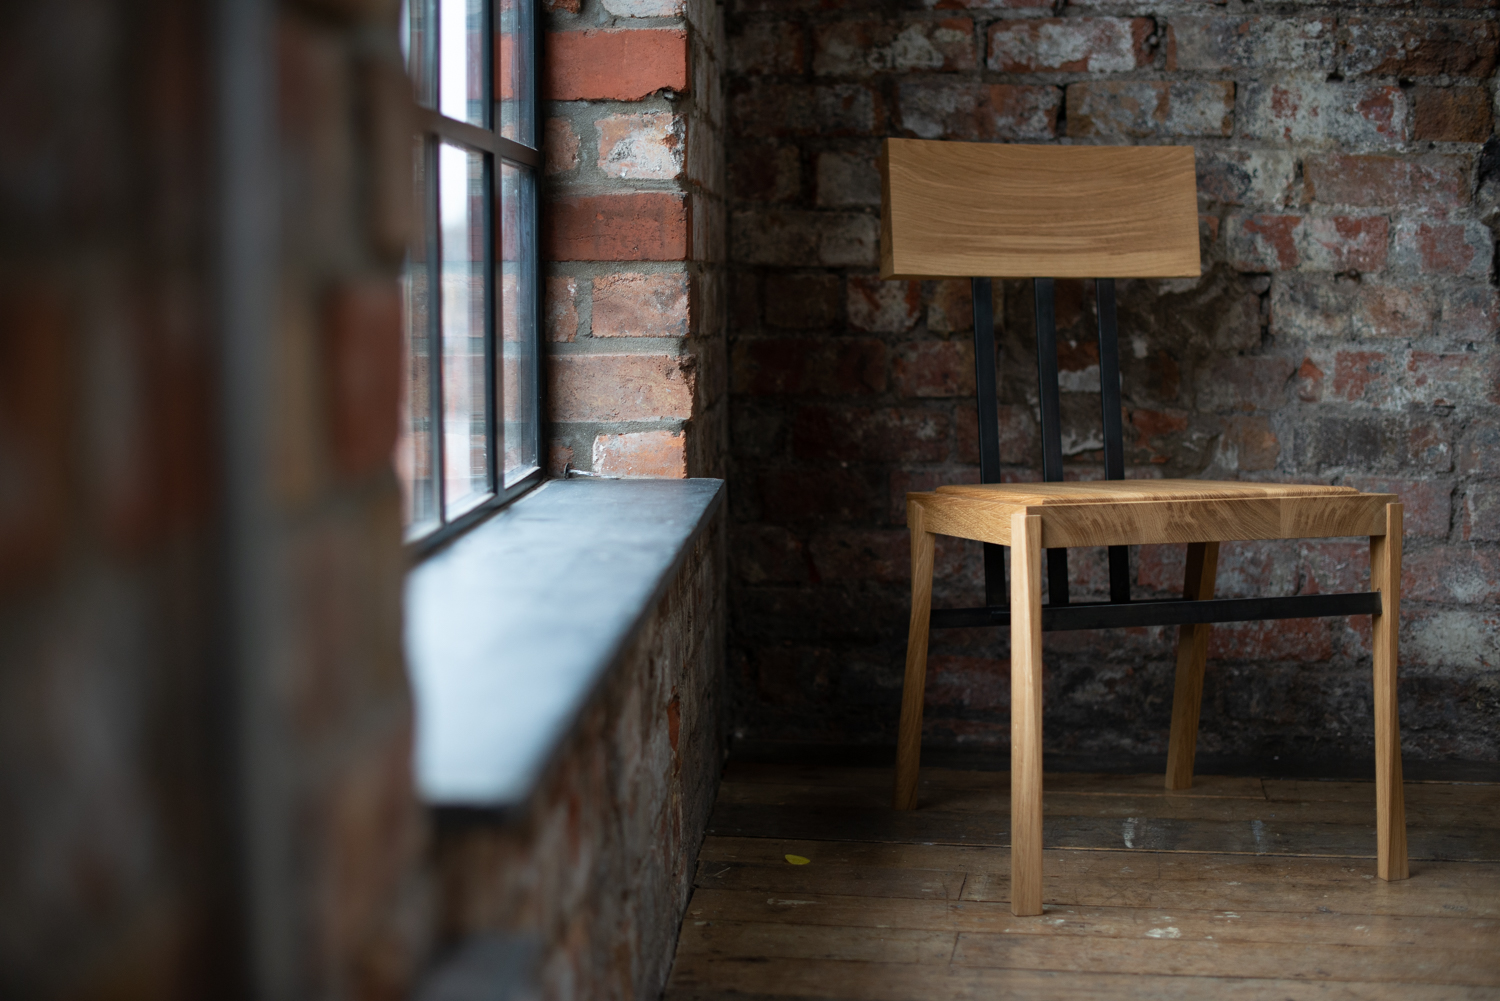 Photoshoot & location The Forge_Bristol_Furniture Maker_Anselm_Fraser-9.jpg